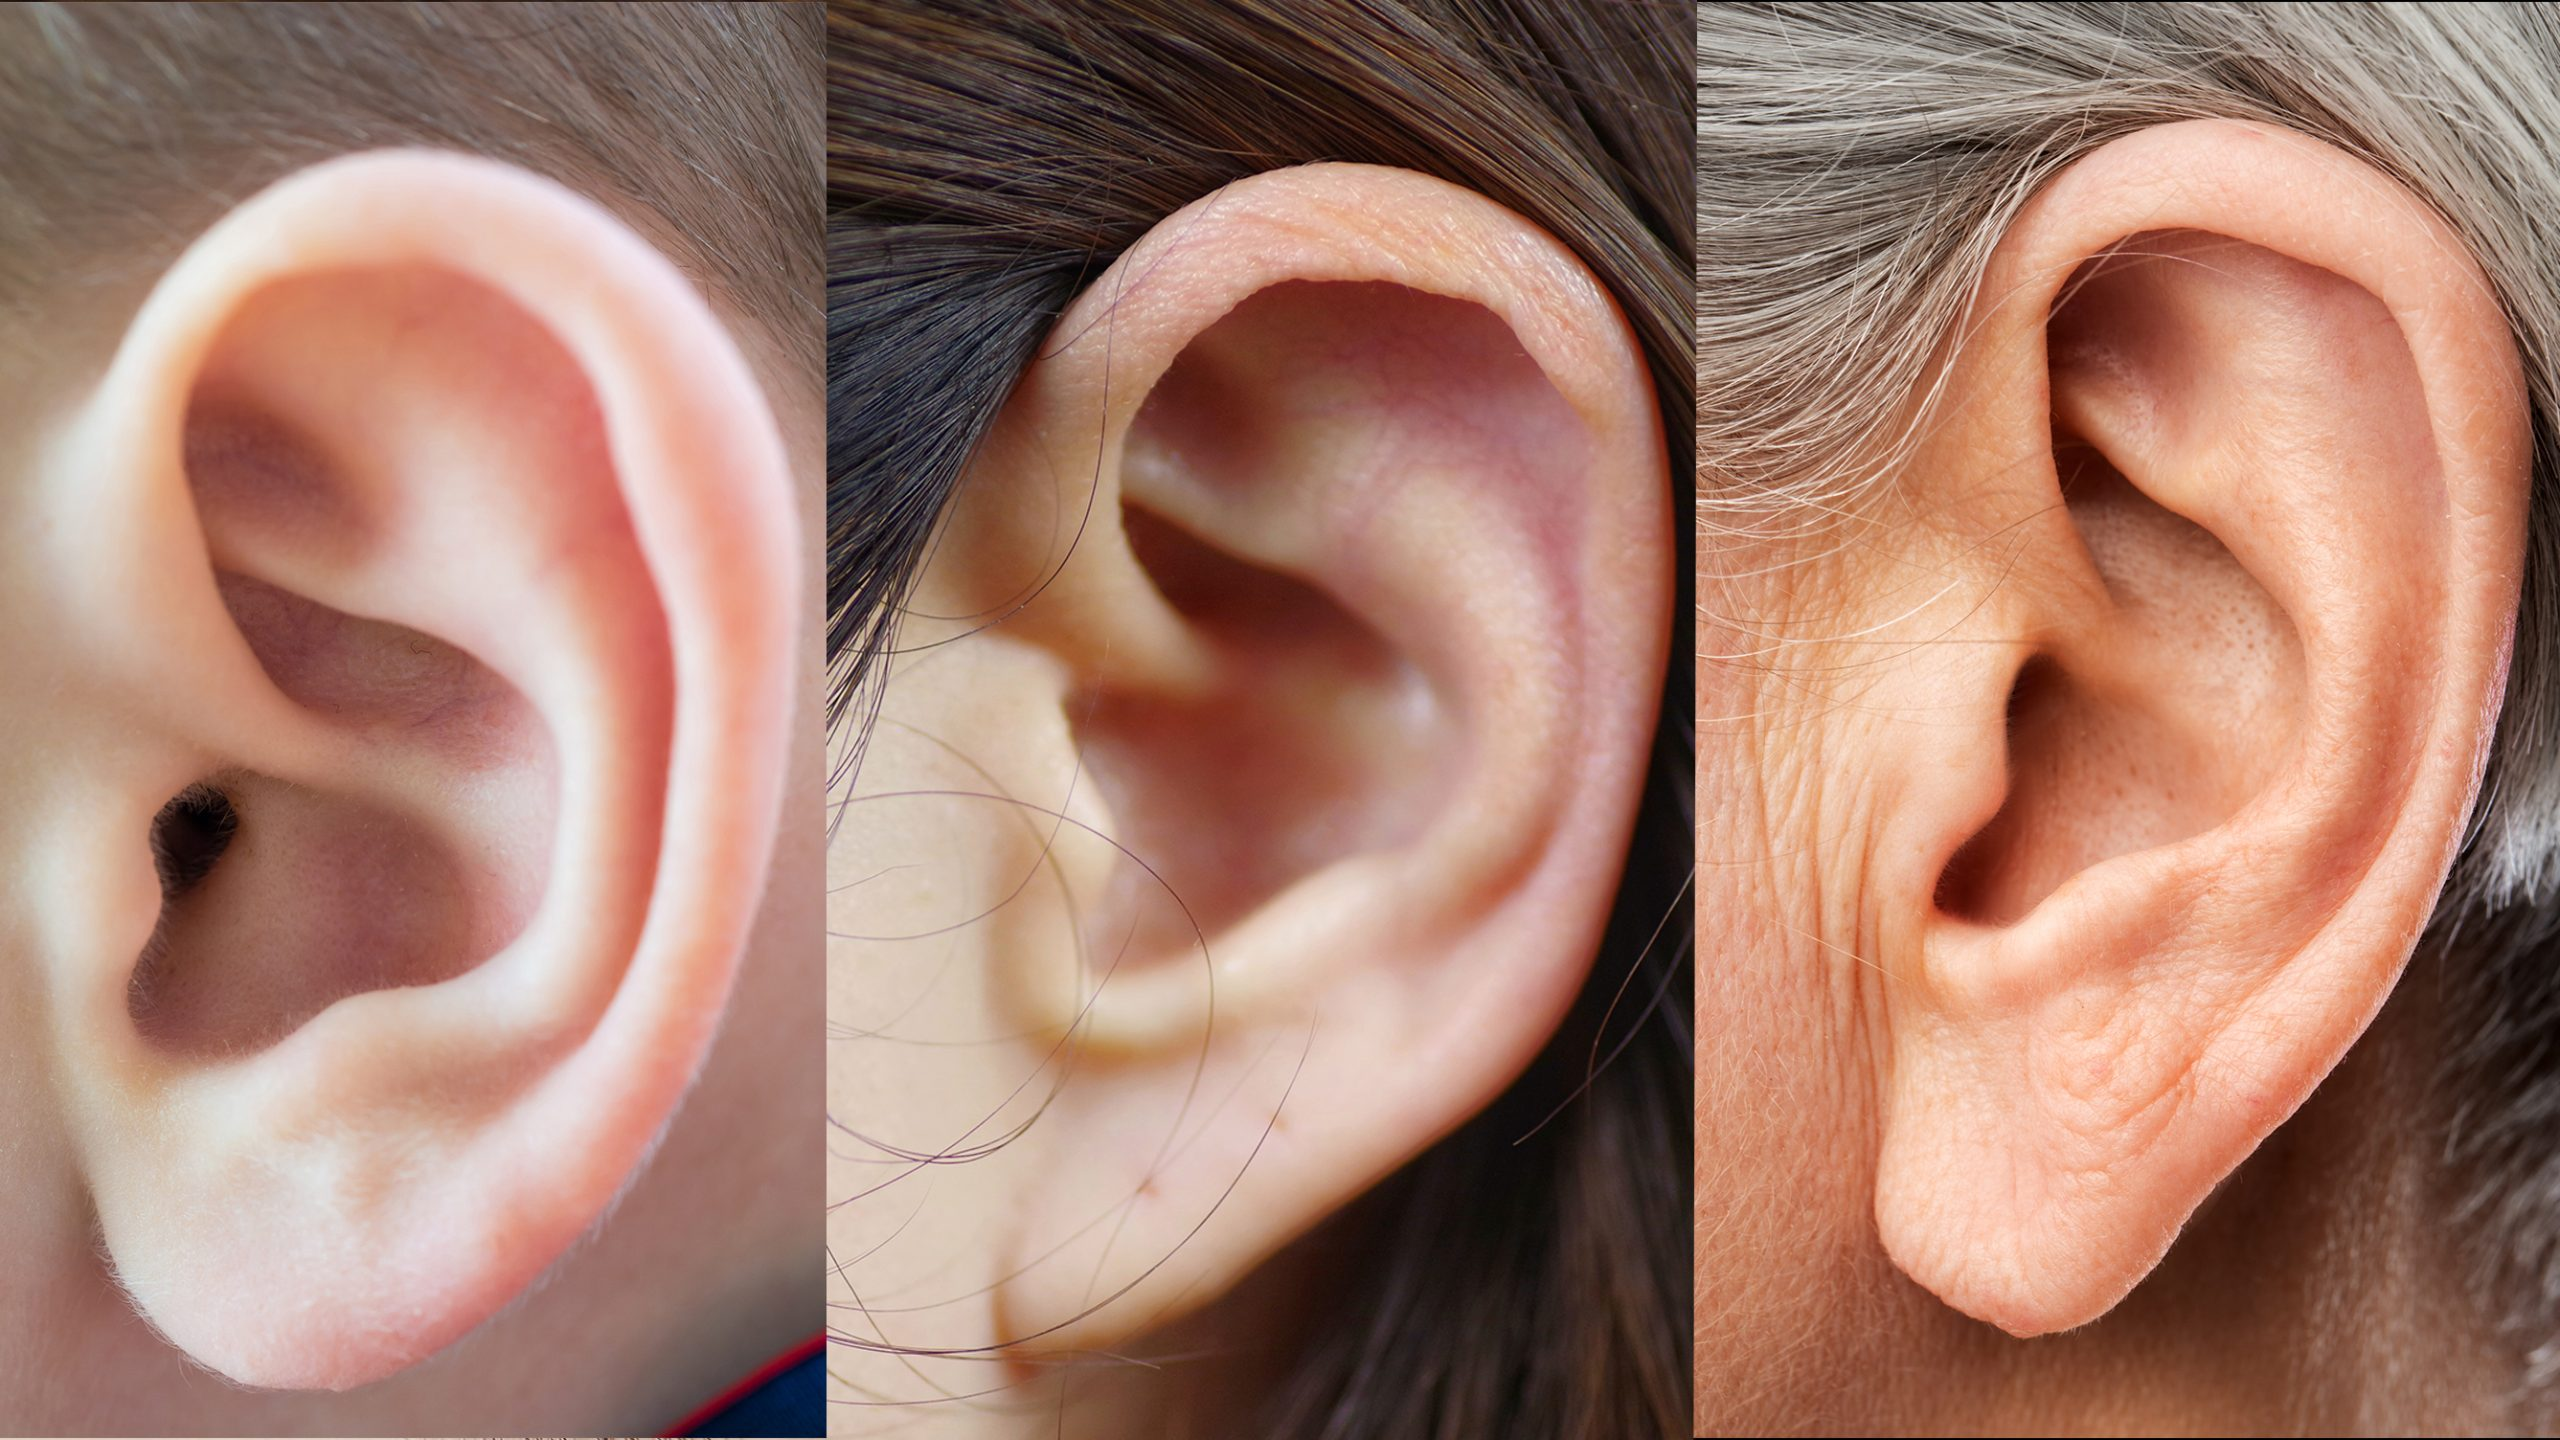 Close ups of three ears: a baby, a teen, a senior